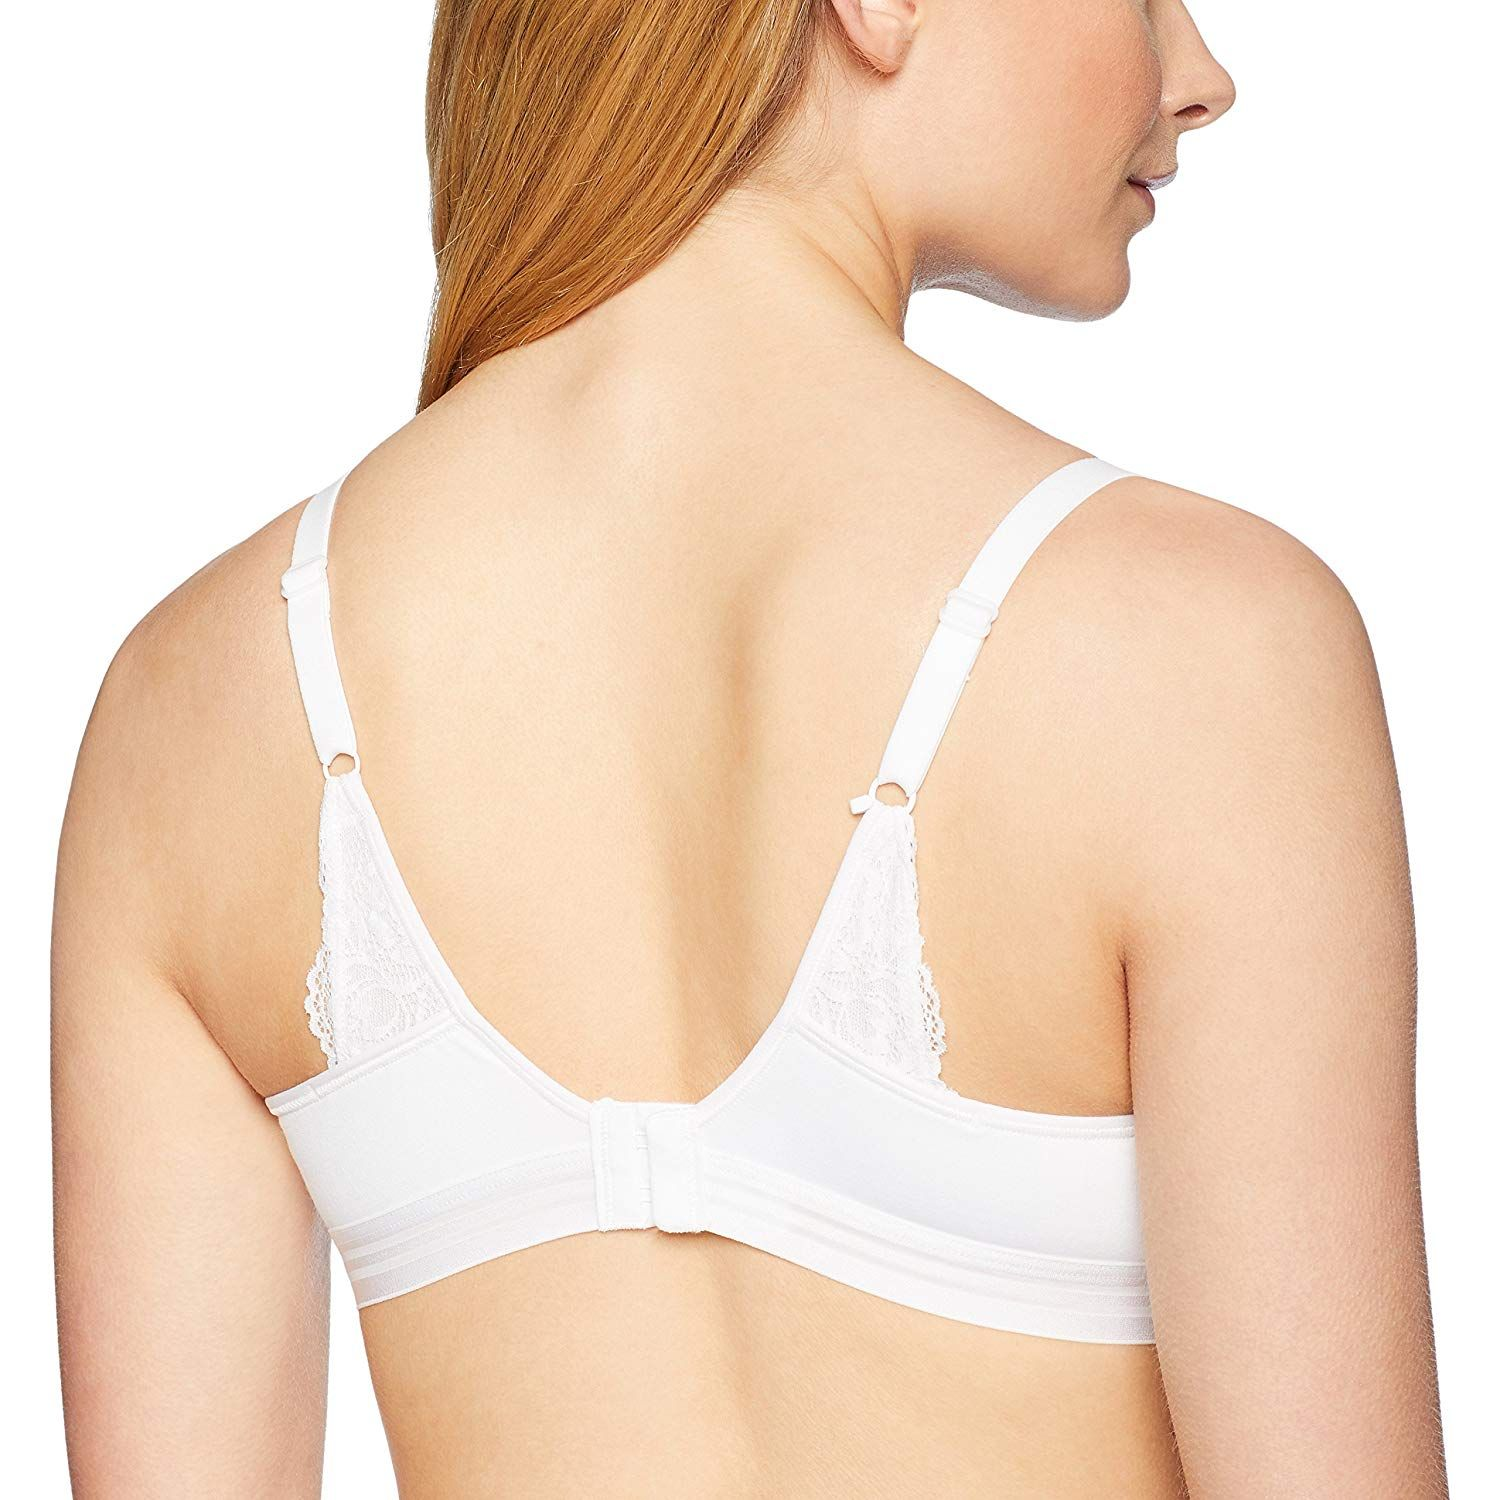 f550ecb28b46e Hanes Women s ComfortFlex Fit T-Shirt Soft Foam Wirefree Bra at Amazon  Women s Clothing store